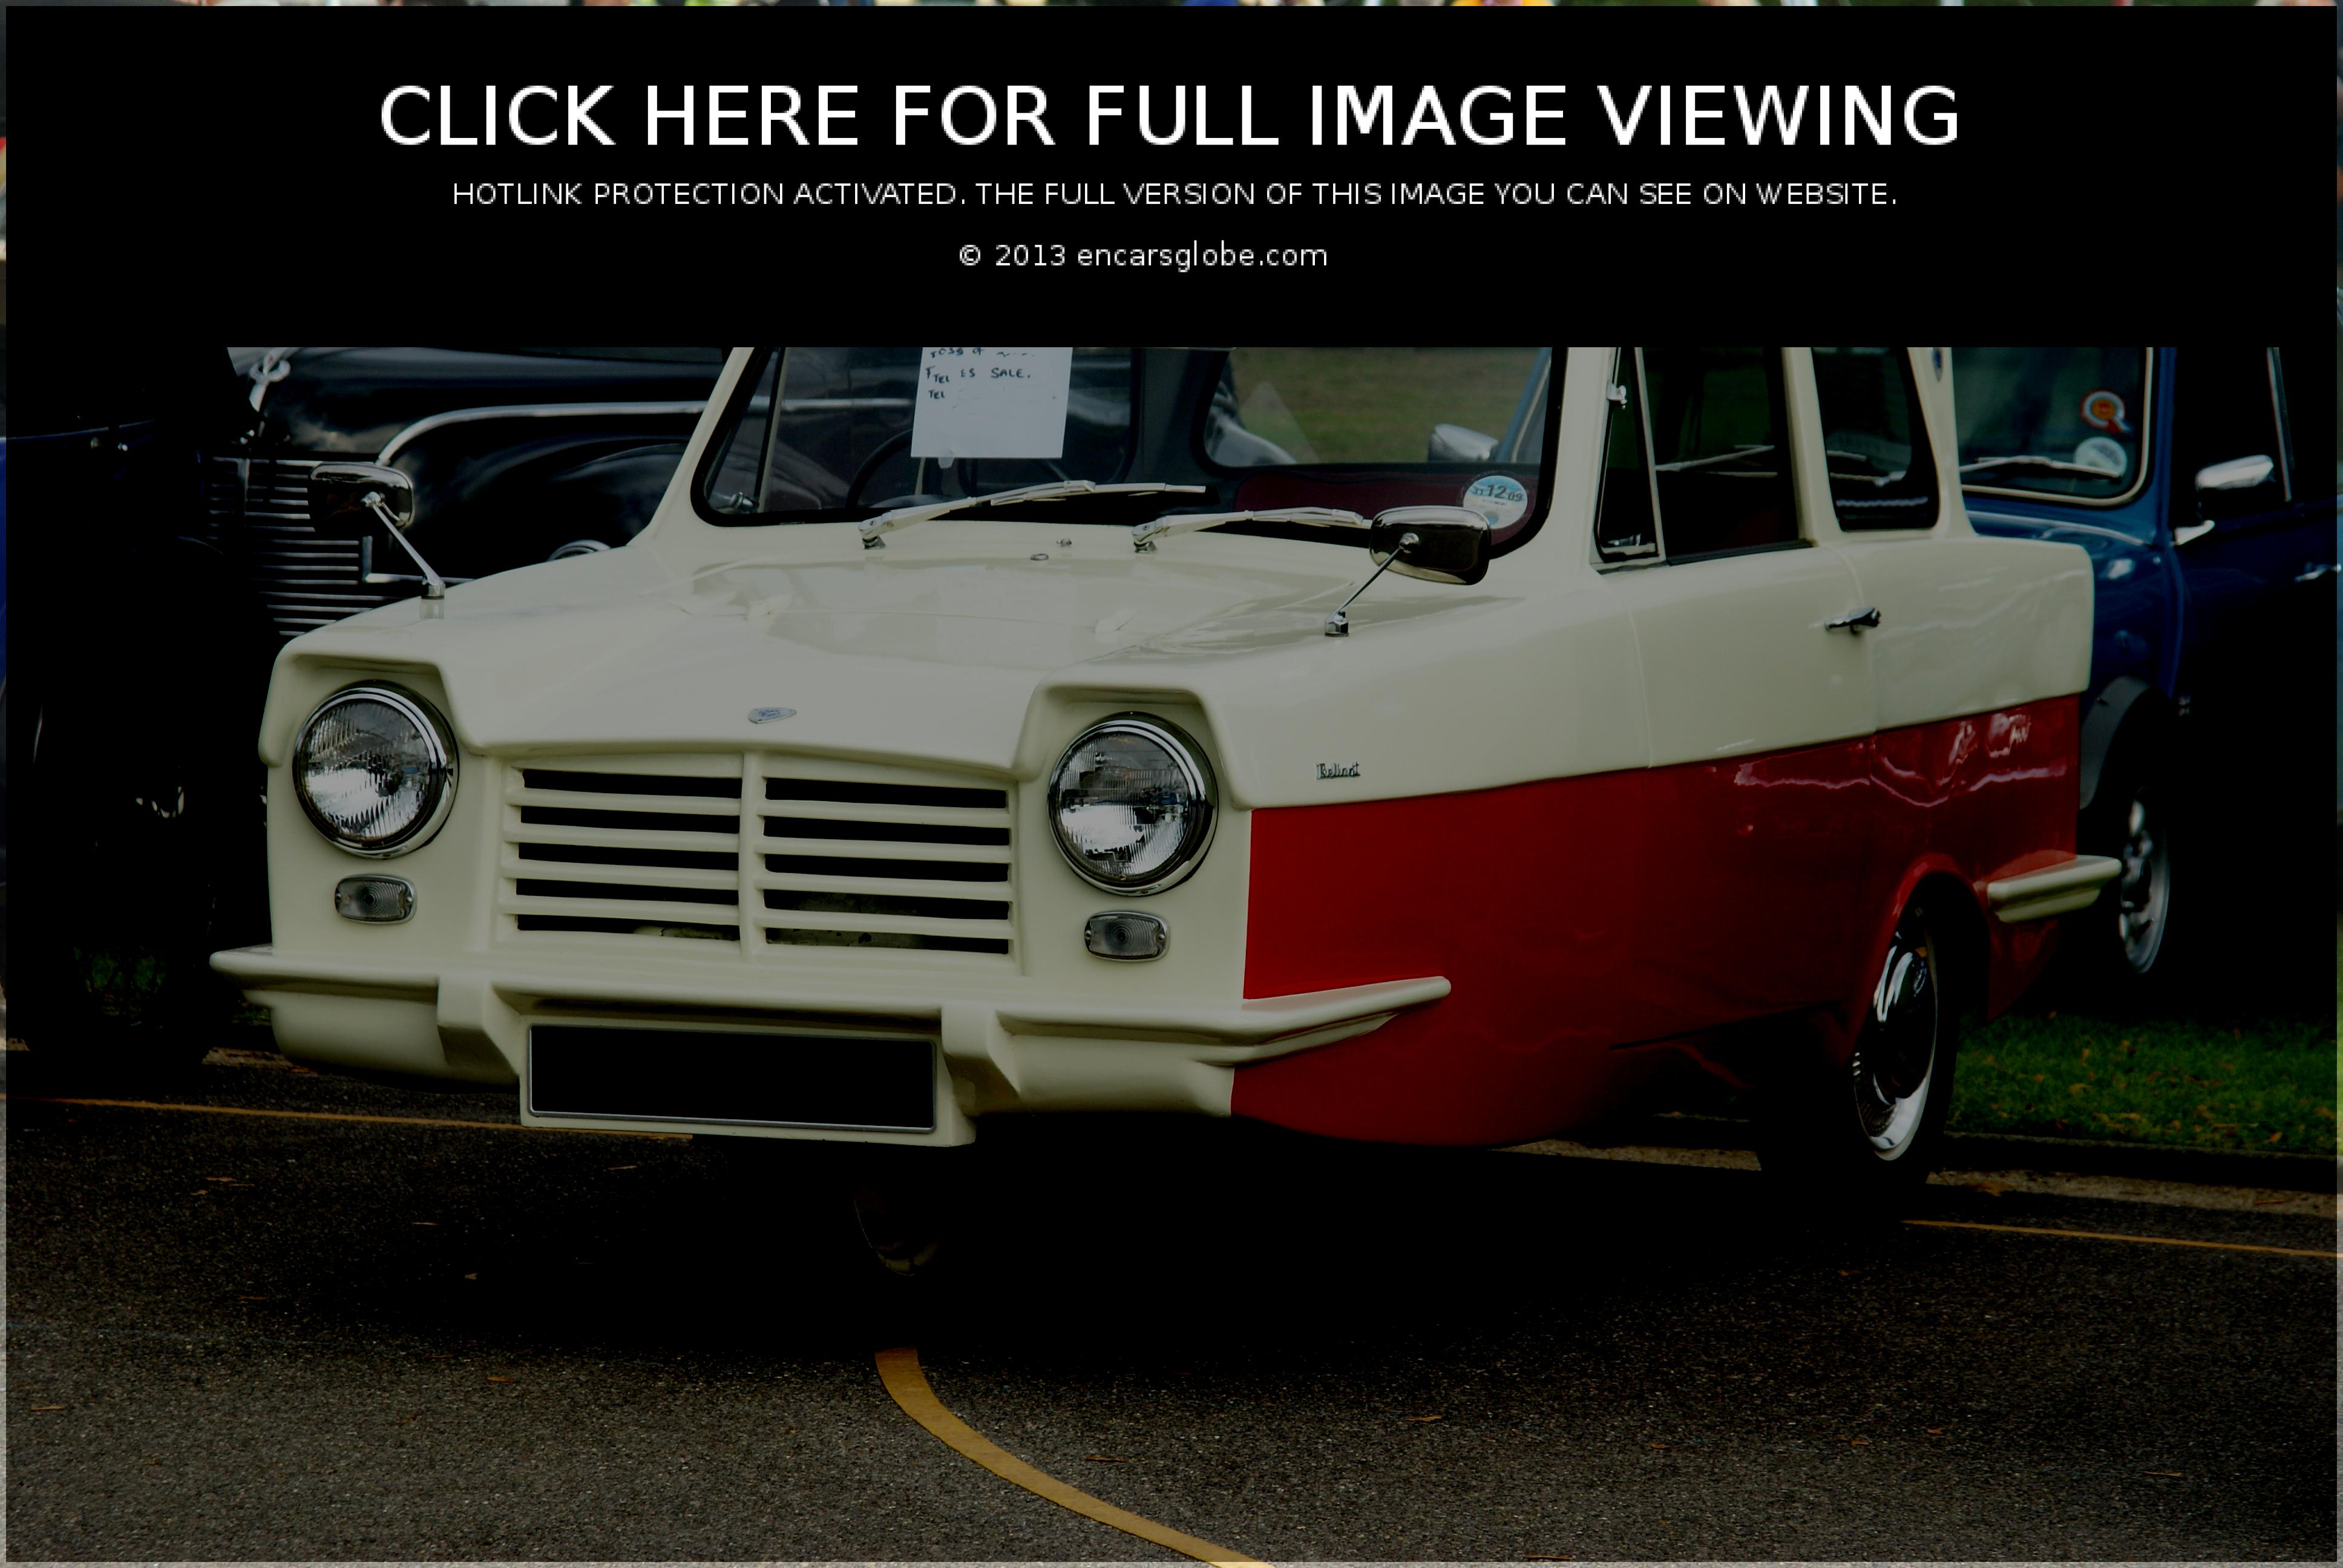 Reliant Regal Photo Gallery: Photo #08 out of 9, Image Size - 300 ...